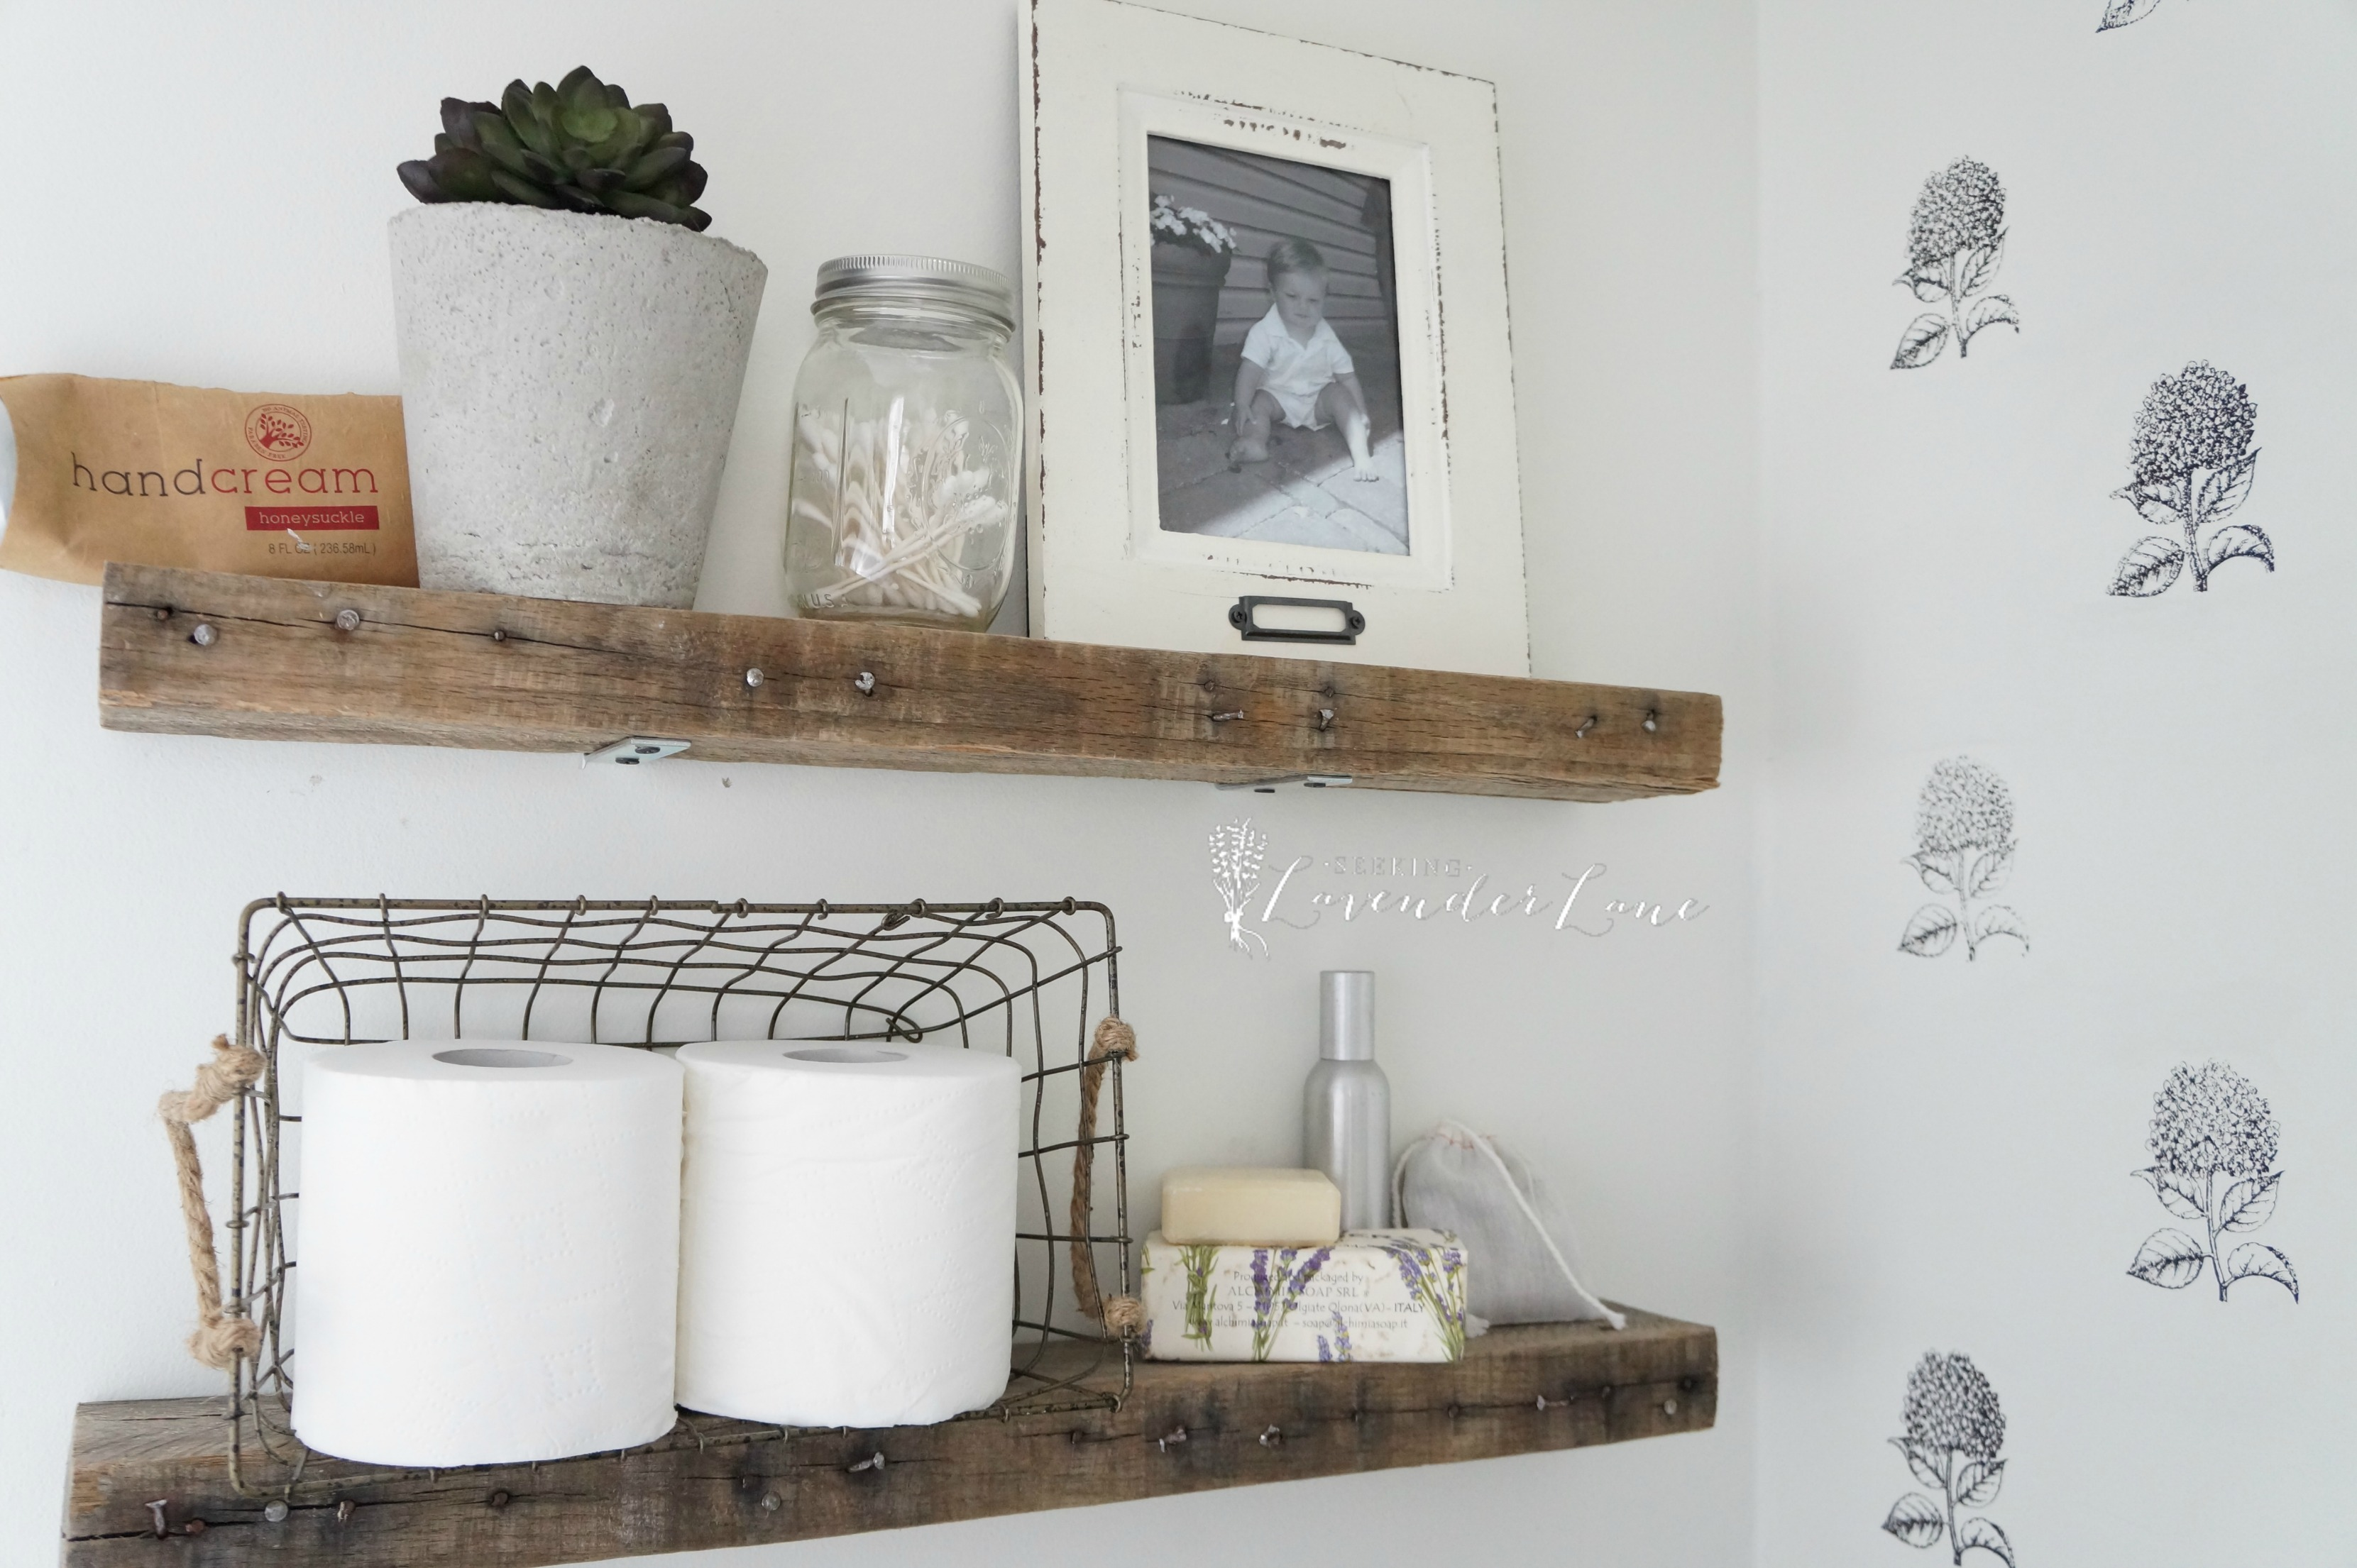 Diy rustic bathroom shelves seeking lavendar lane - Floating shelf ideas for bathroom ...